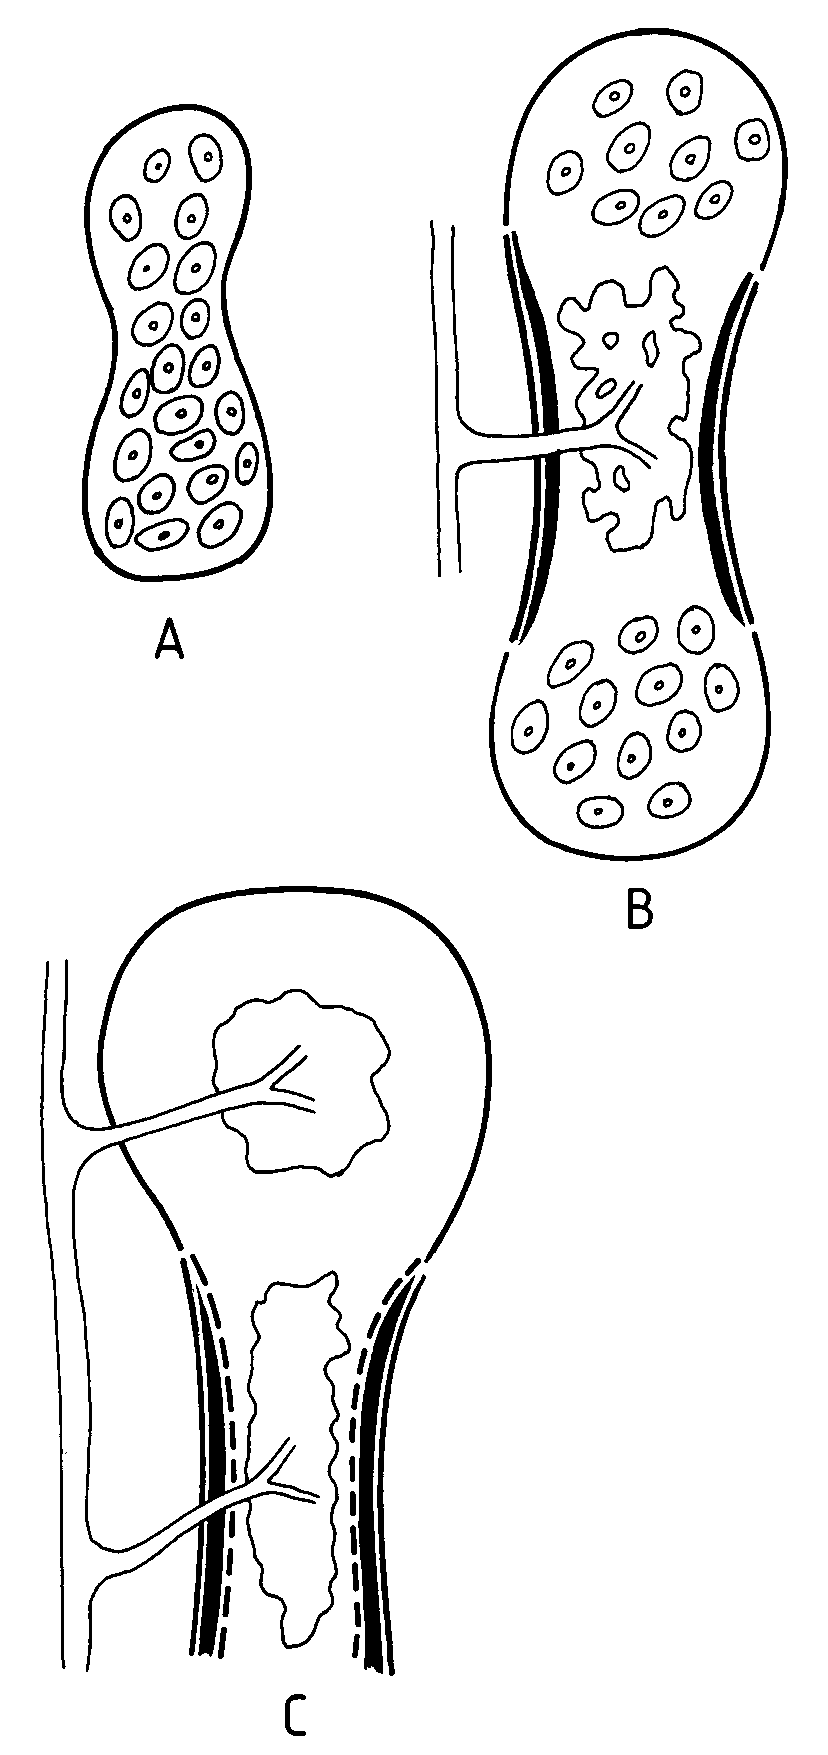 hight resolution of a c diagram of intramembranous ossification of tubular bone a perichondrium peripheral black line at the periphery of the partially calcified cartilage